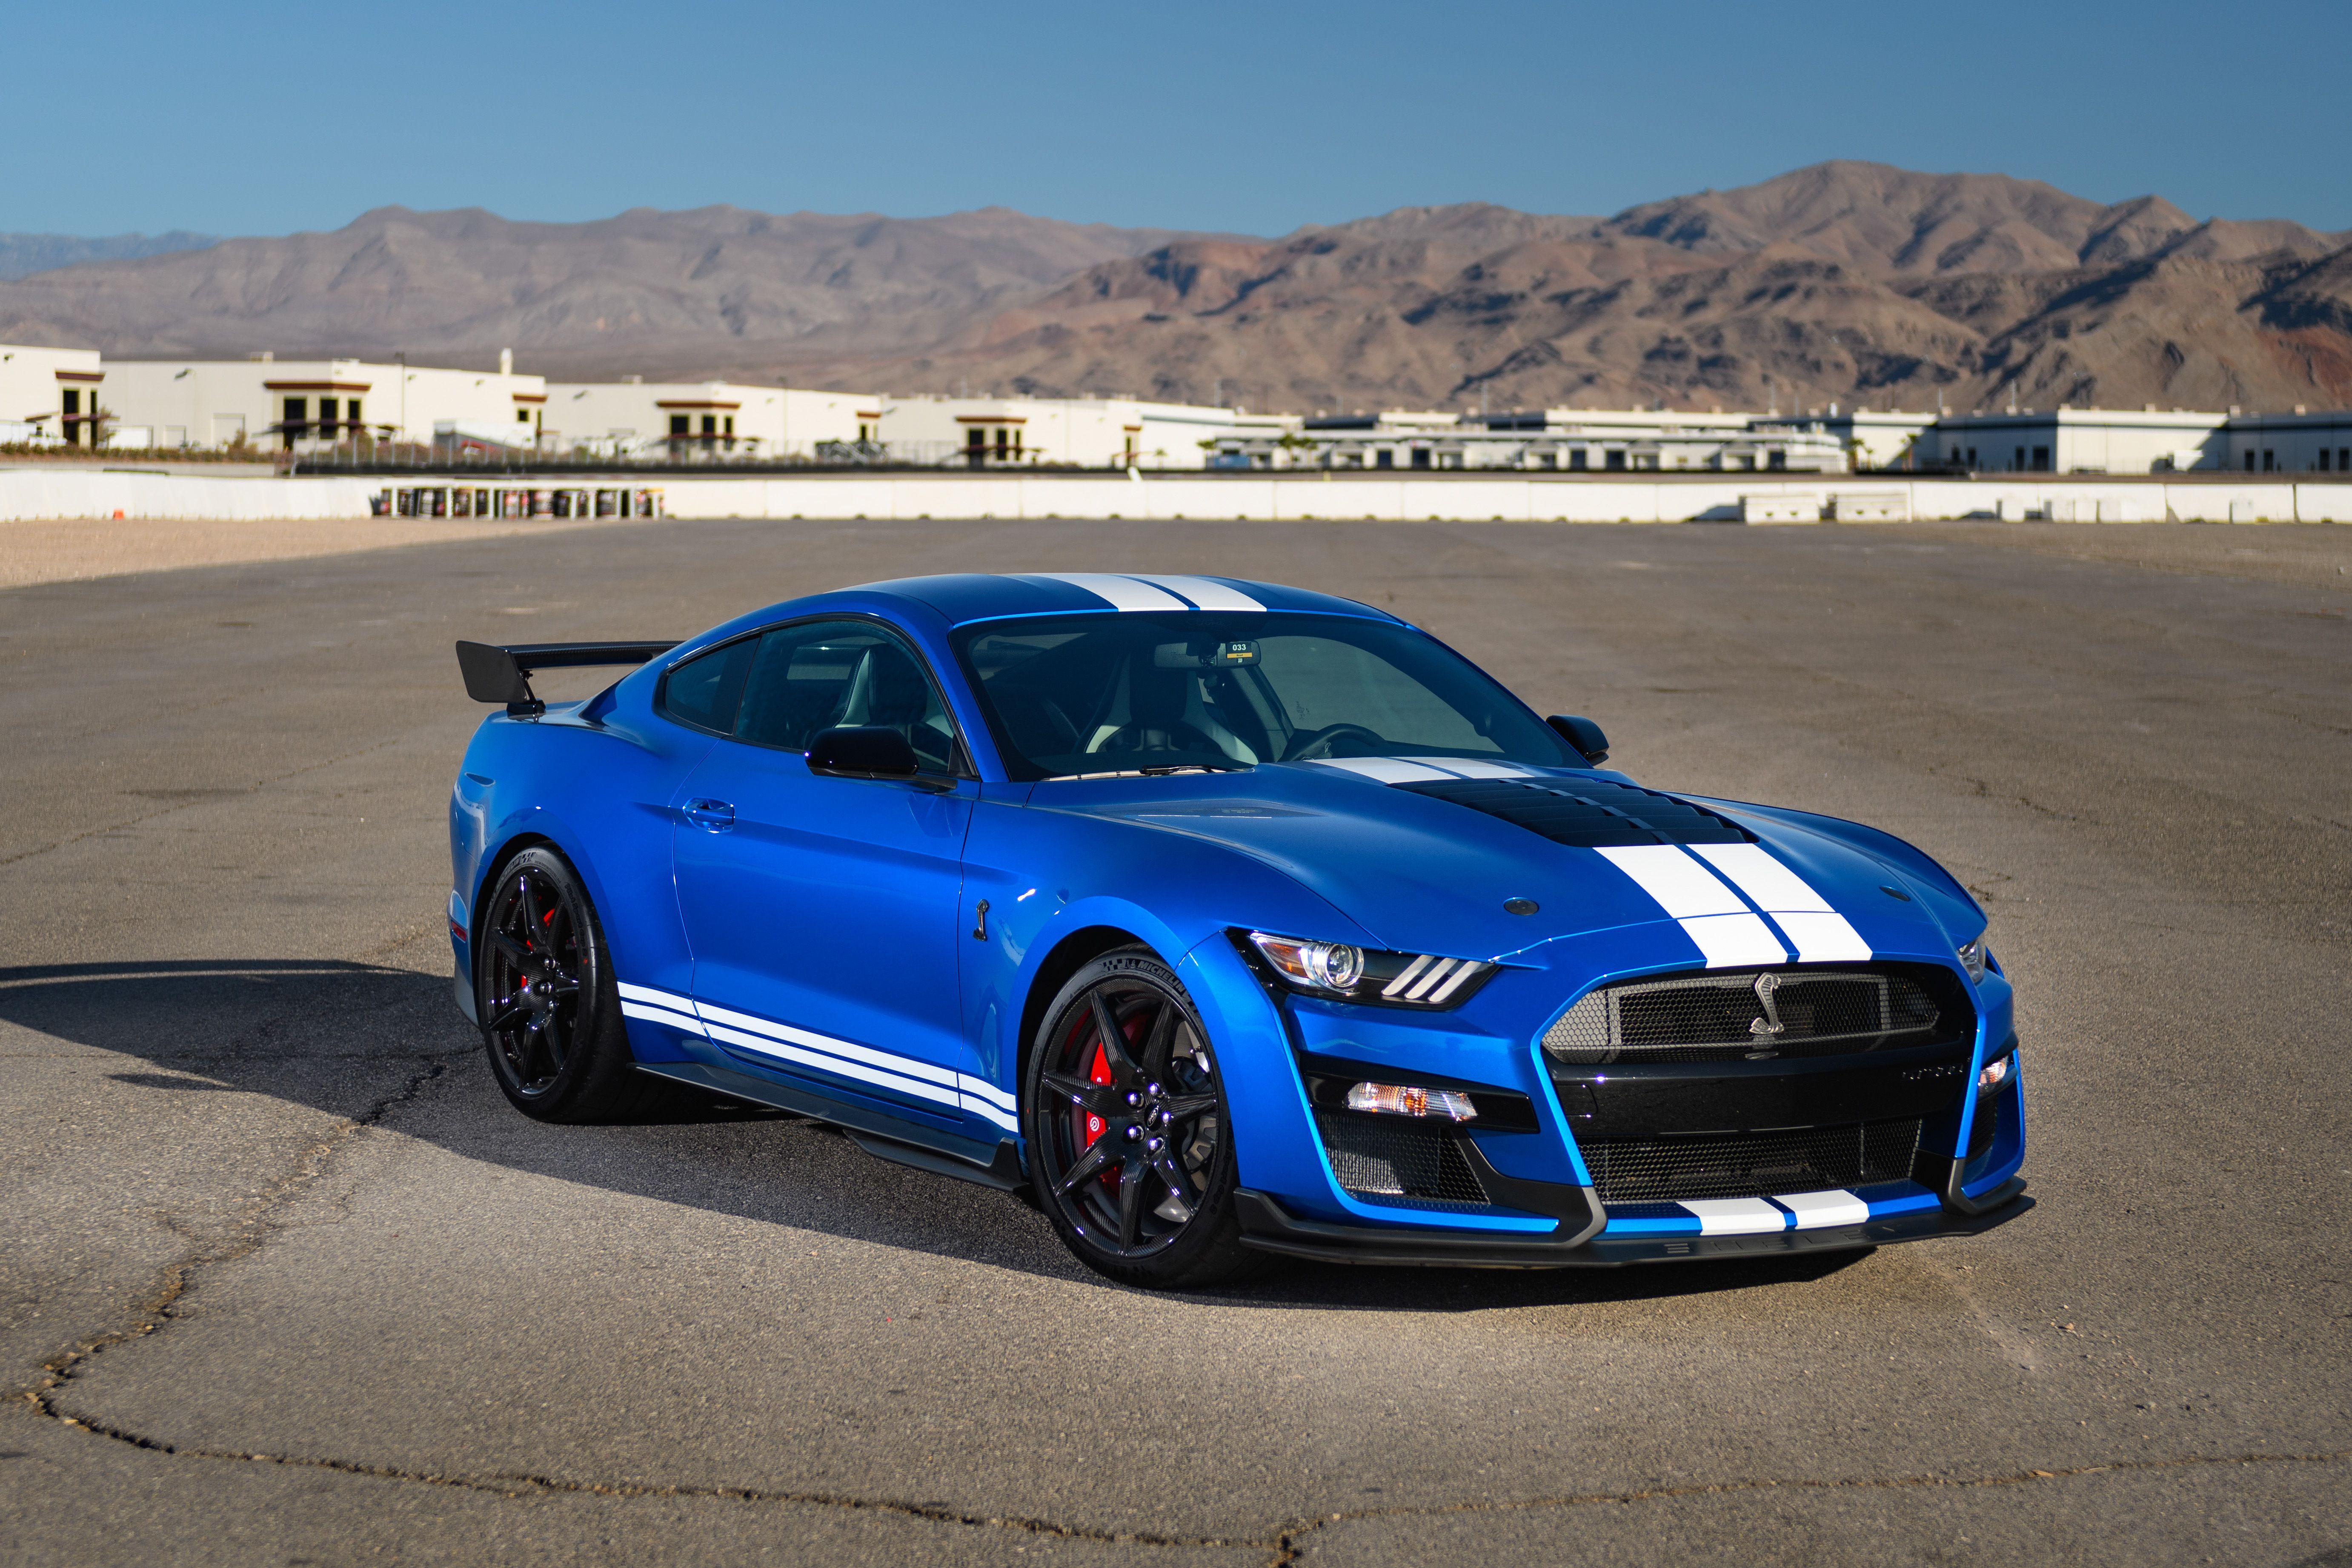 Perfect Review Ford Mustang Shelby Gt500 Mpg And Images And Pics In 2020 Ford Mustang Shelby Gt500 Shelby Gt500 Mustang Shelby